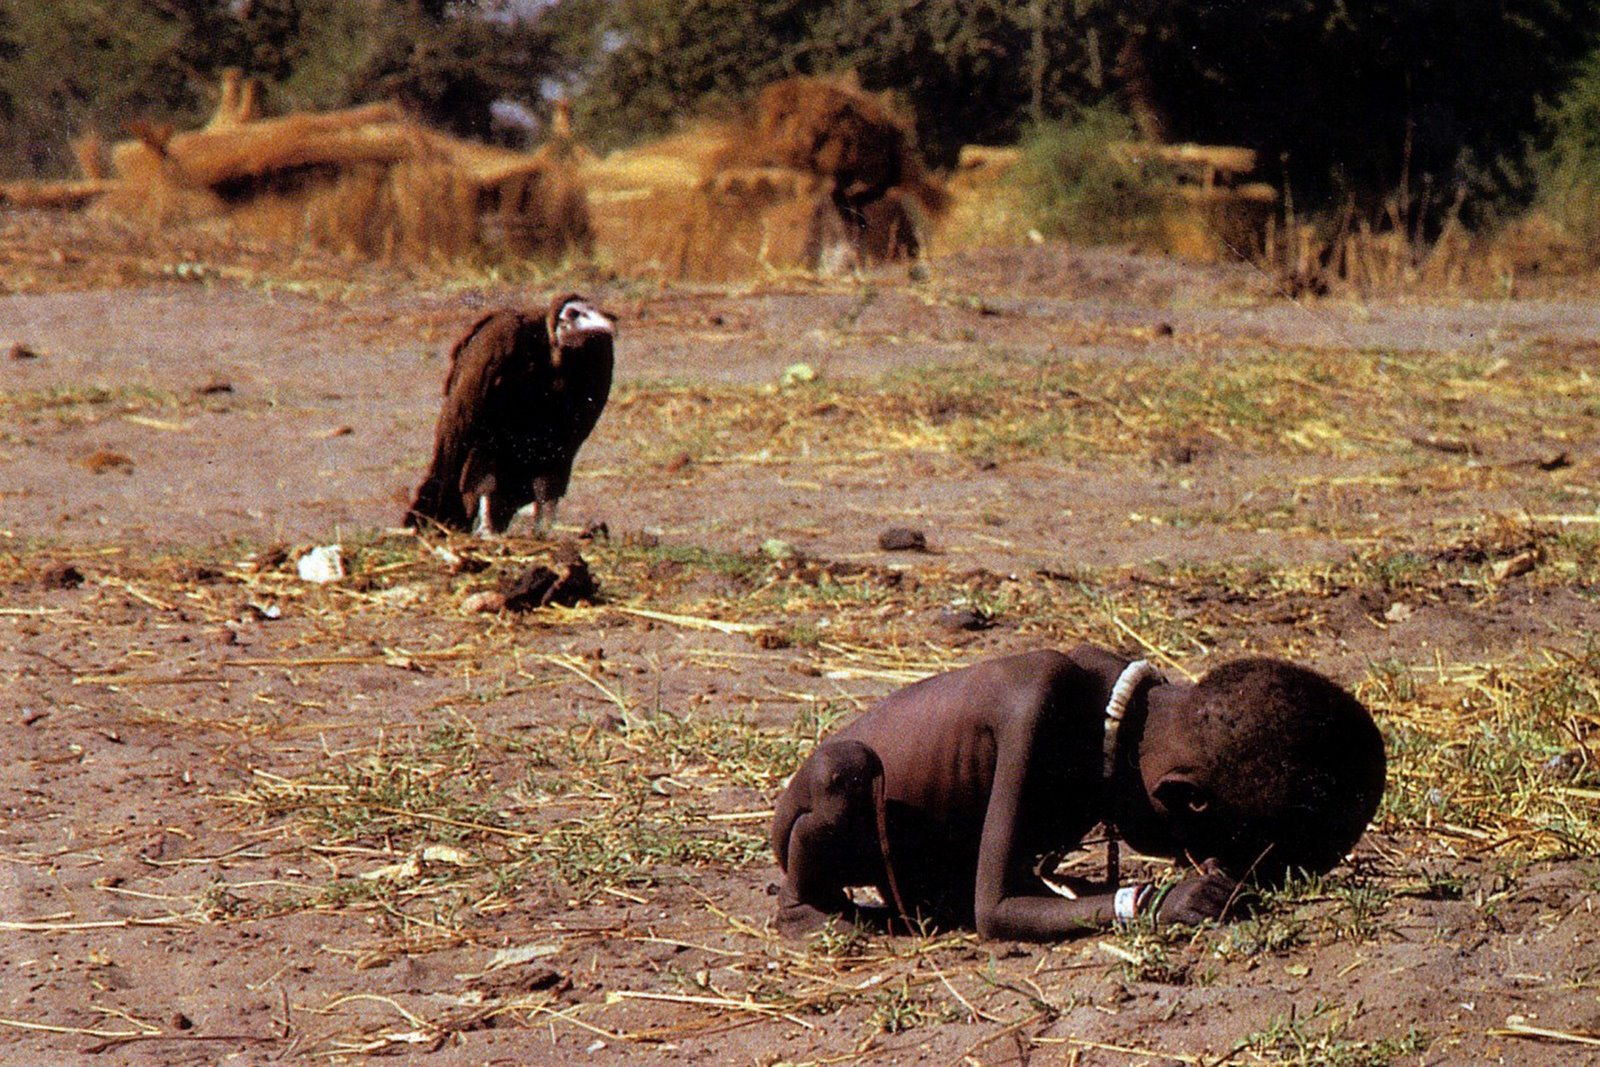 Kevin Carter Vulture Stalking a Child